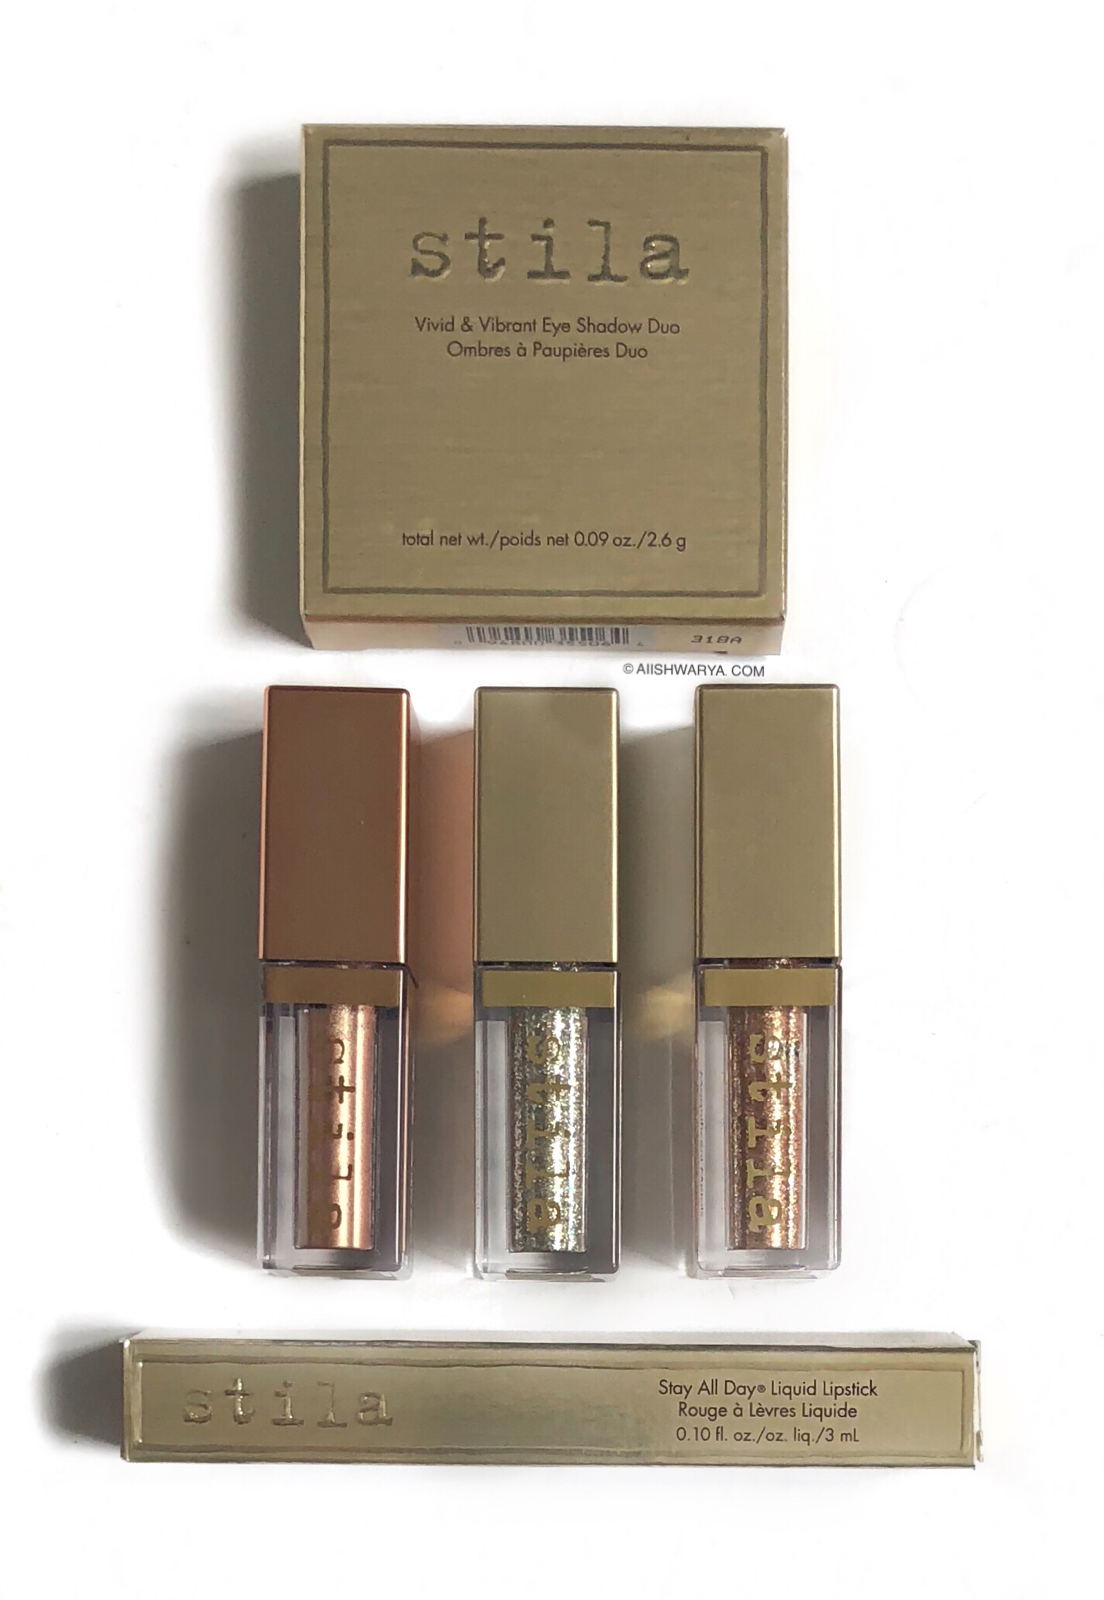 Stila Makeup Saubhaya